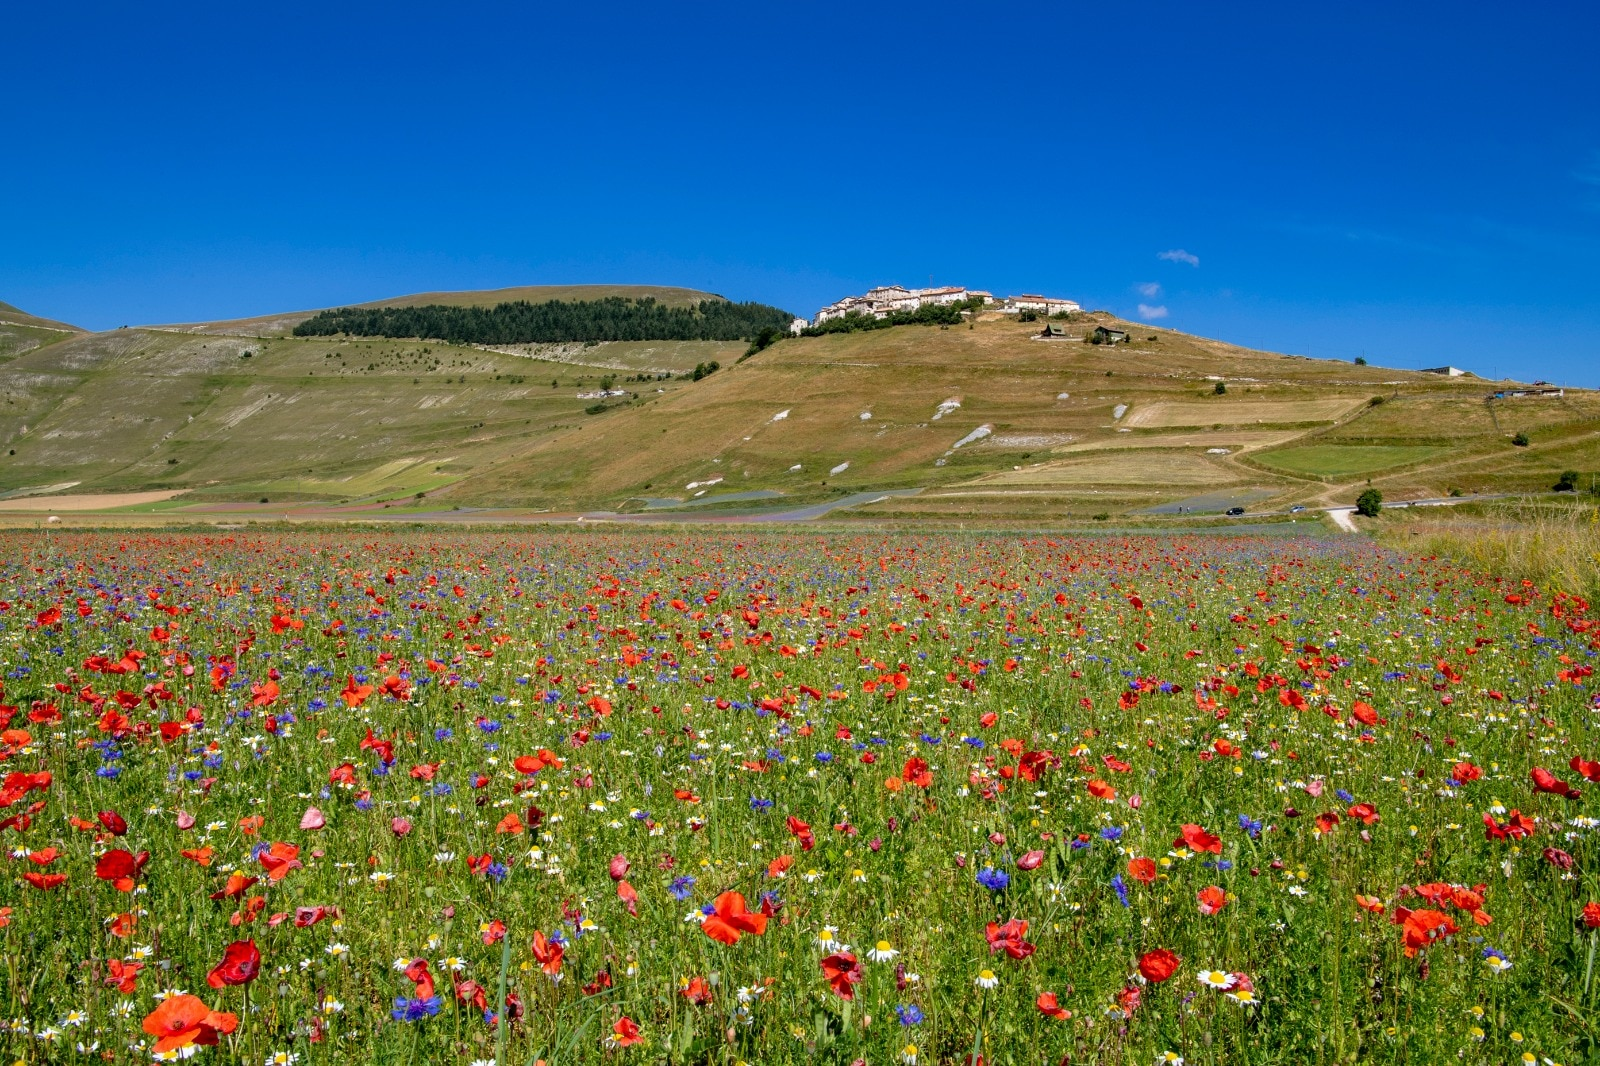 Photo of Riaccesa la webcam sulla Piana di Castelluccio di Norcia. Tutto pronto per la fioritura